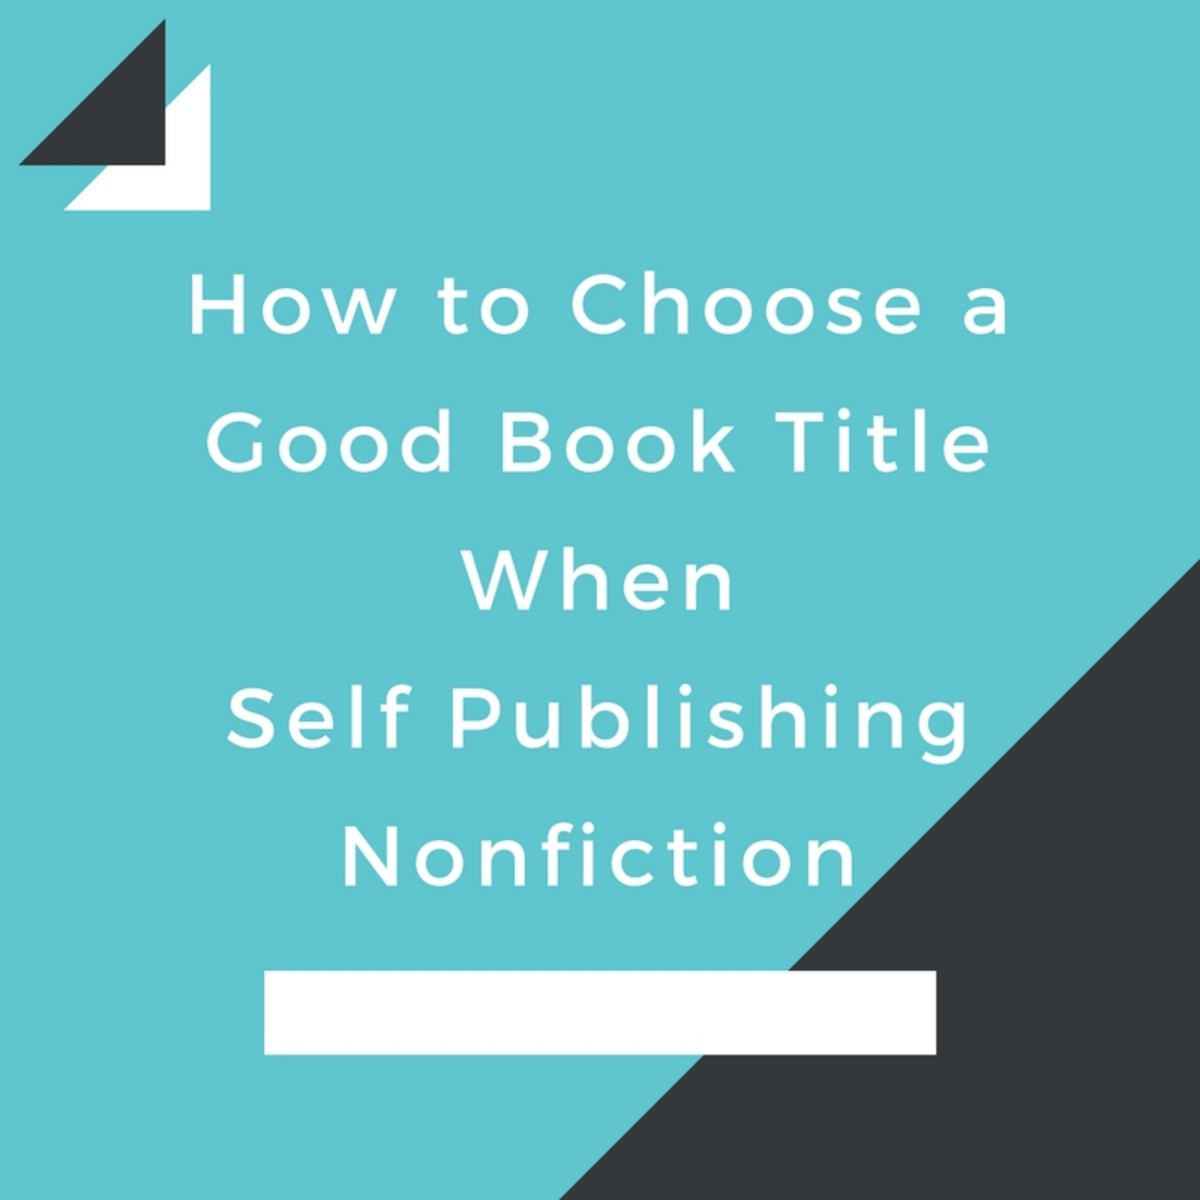 How to Choose a Good Book Title When Self Publishing Nonfiction